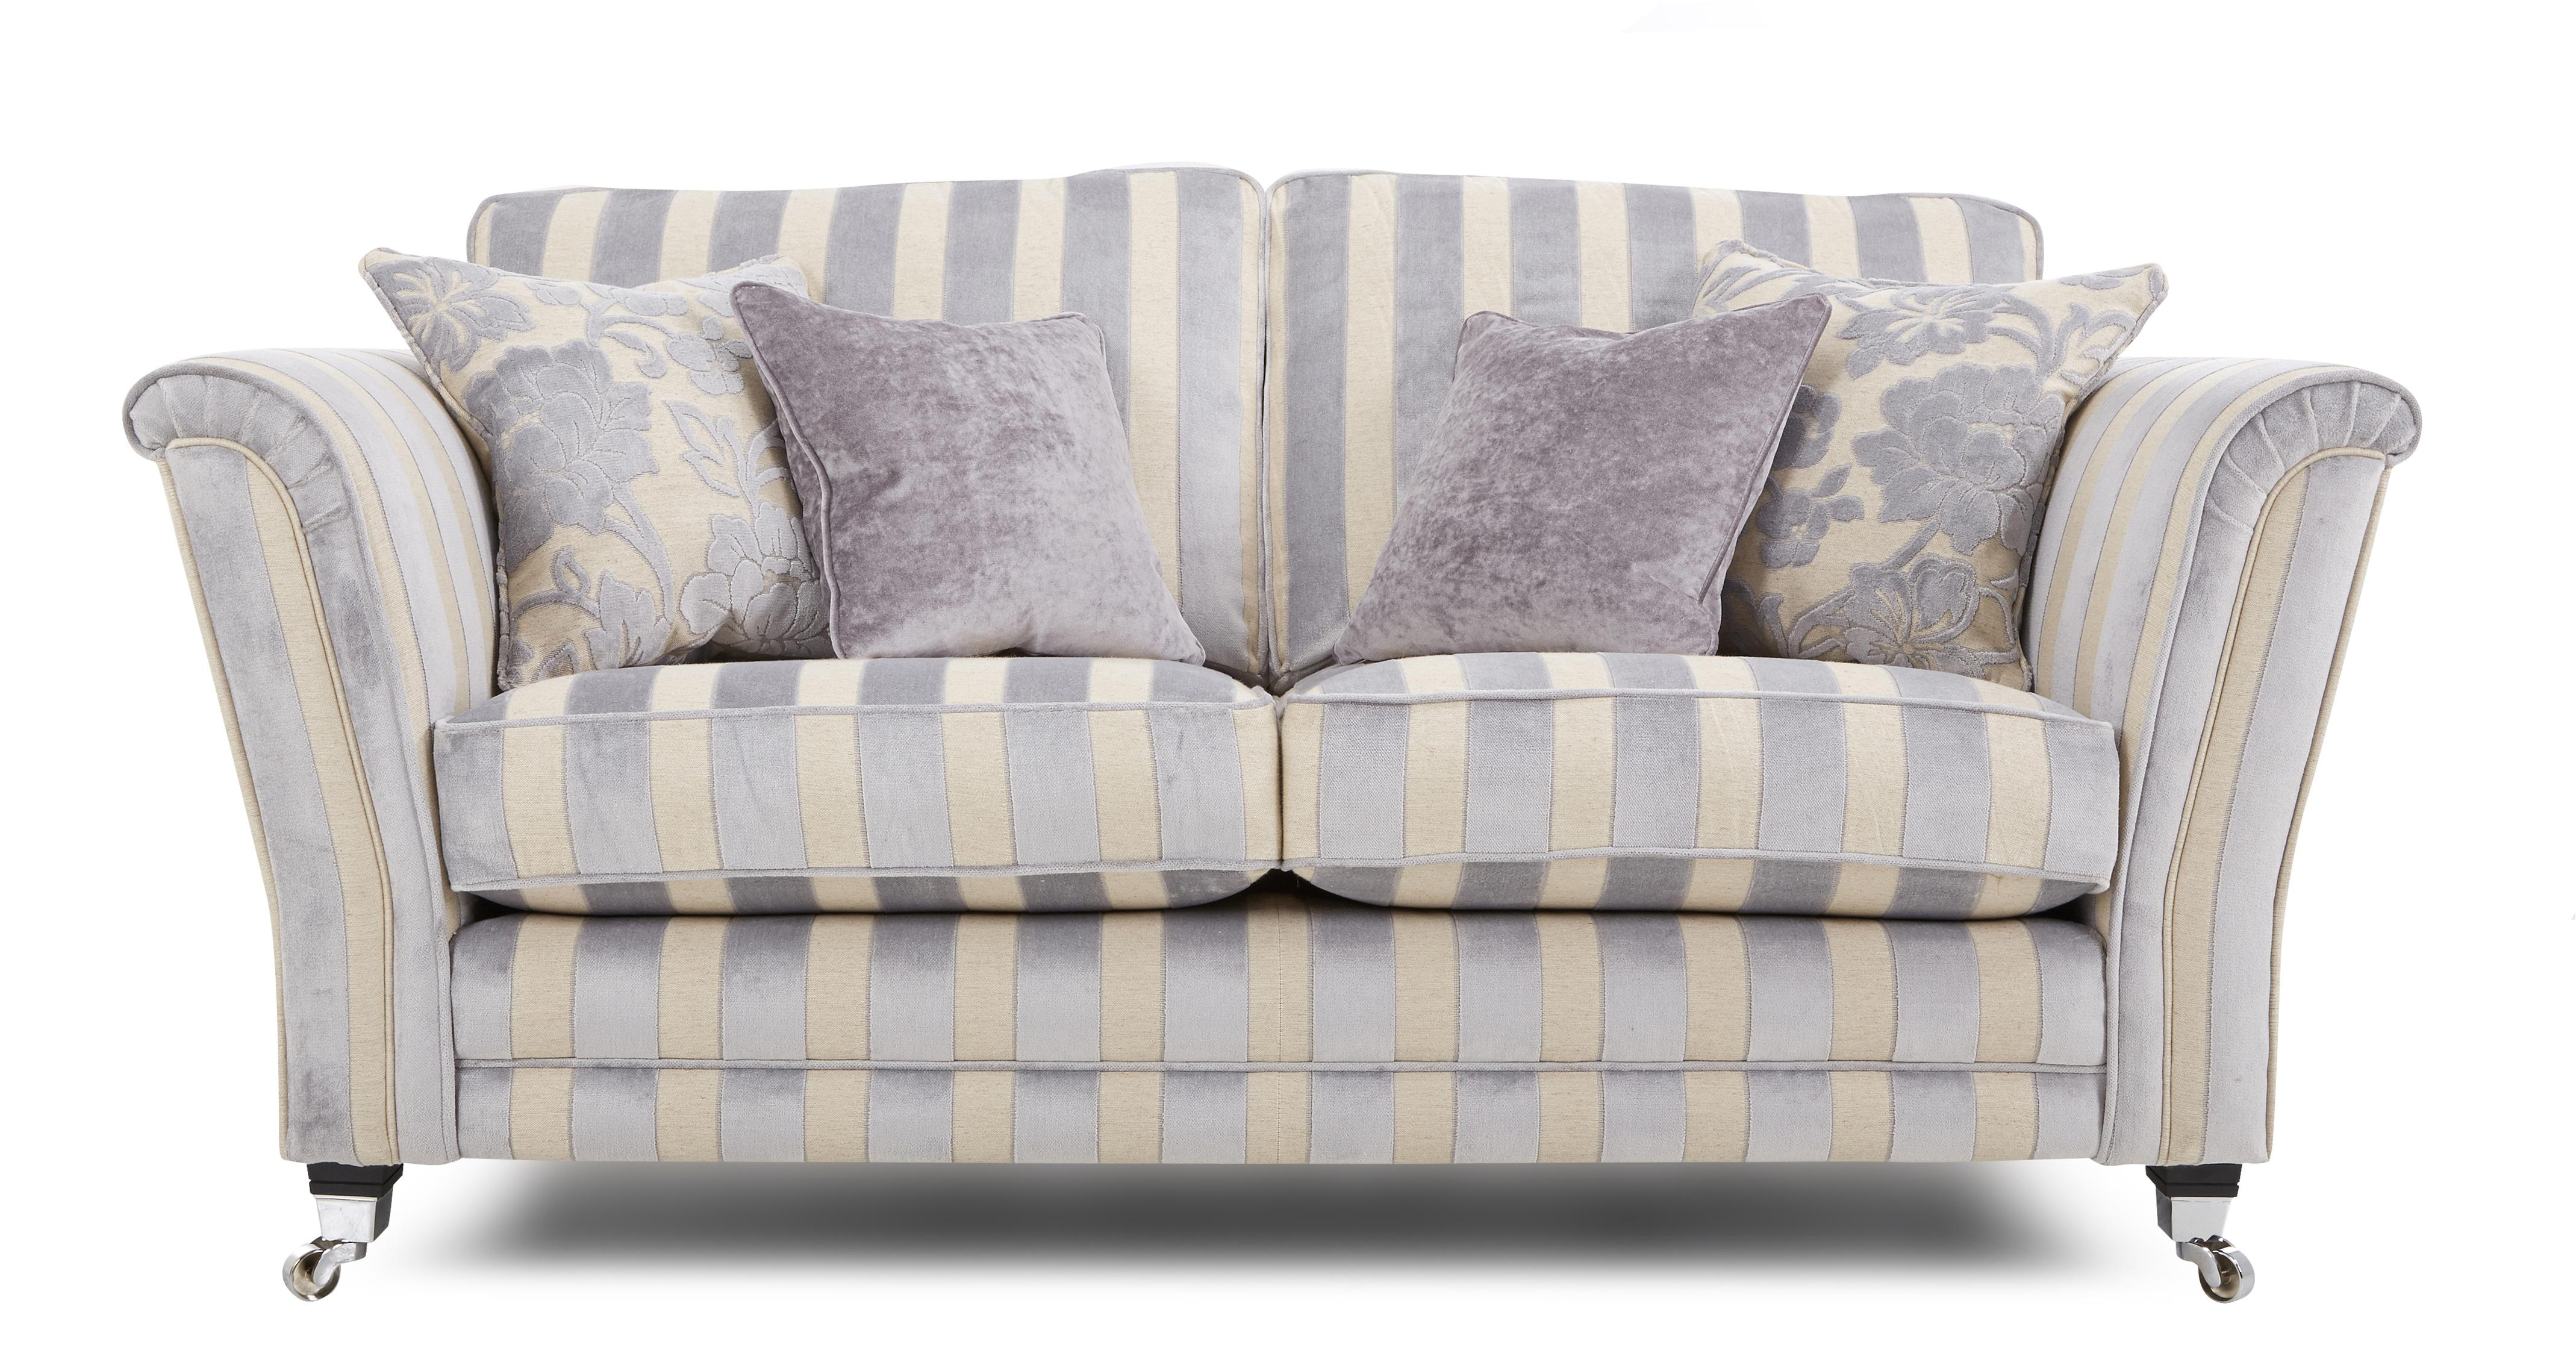 Striped Fabric Sofas Uk on Living Room With Gray Couch